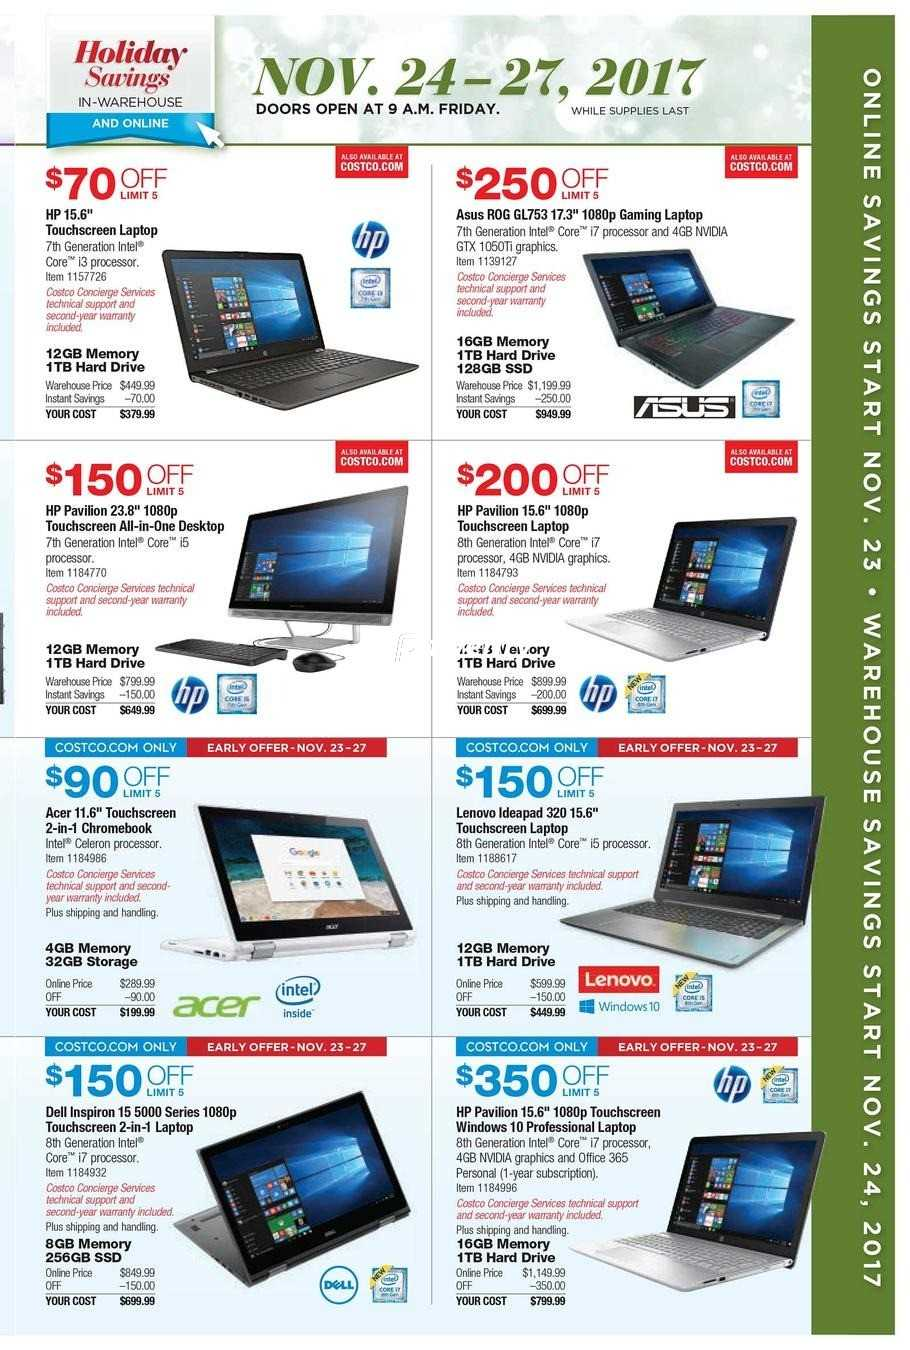 CR decodes the models and prices for the warehouse club's holiday sales